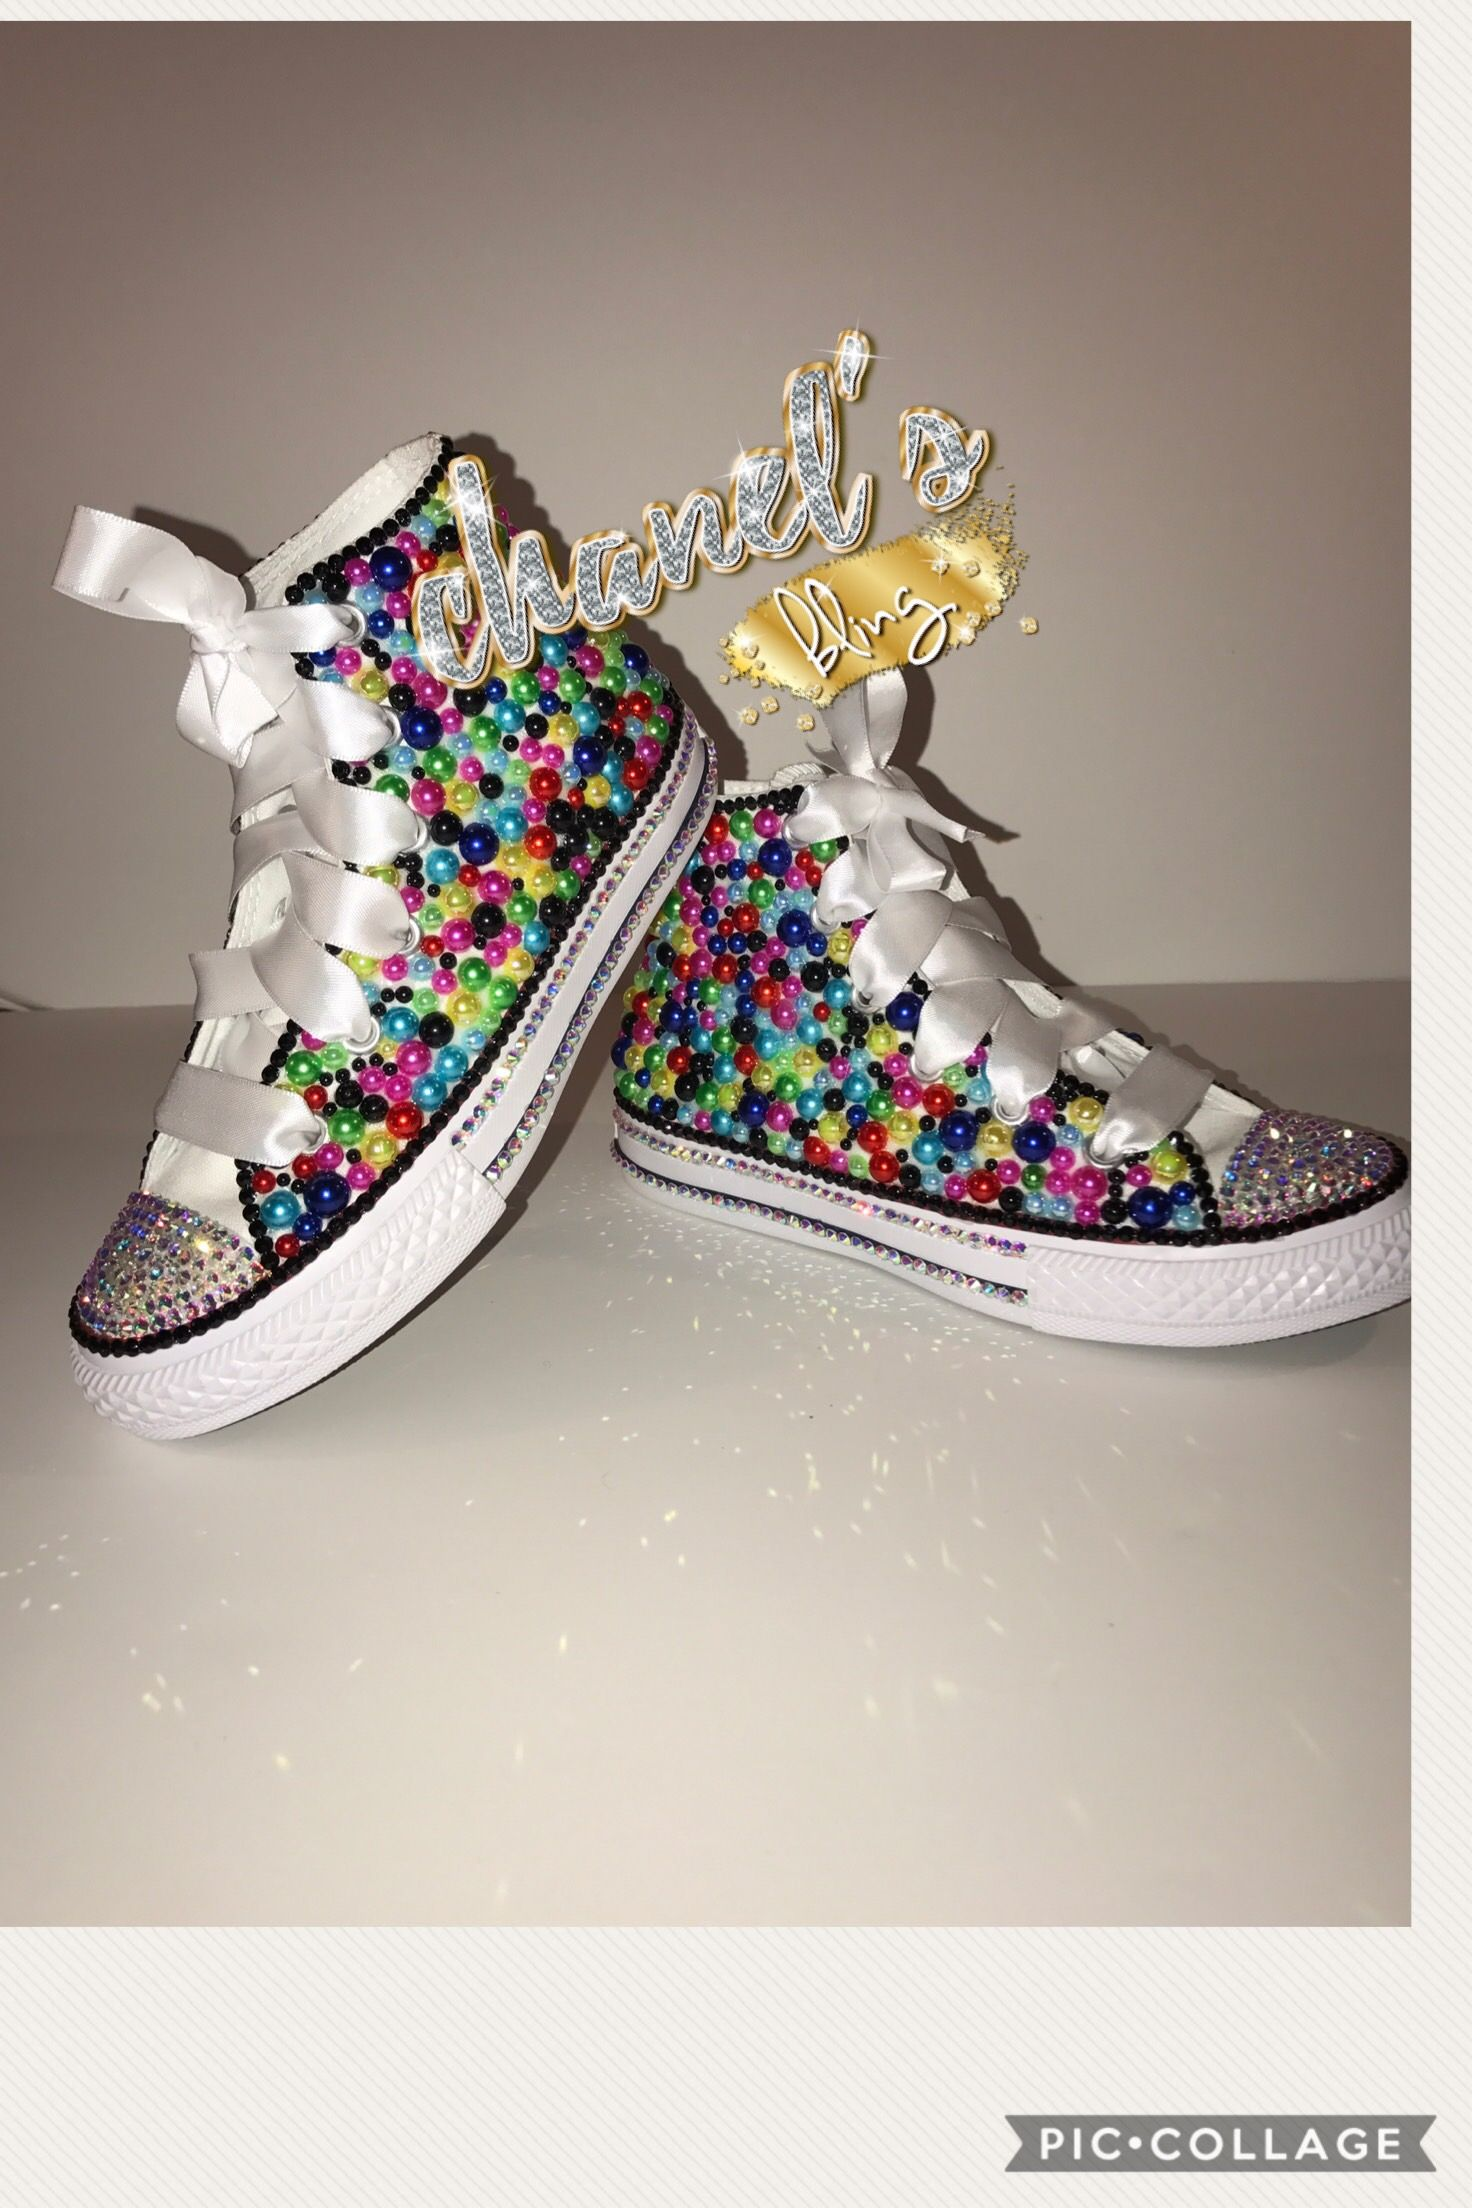 b0e17c310306 Custom bling converse all star chuck taylor sneakers embellished with high  quality rhinestones and pearls. Perfect for weddings shoes